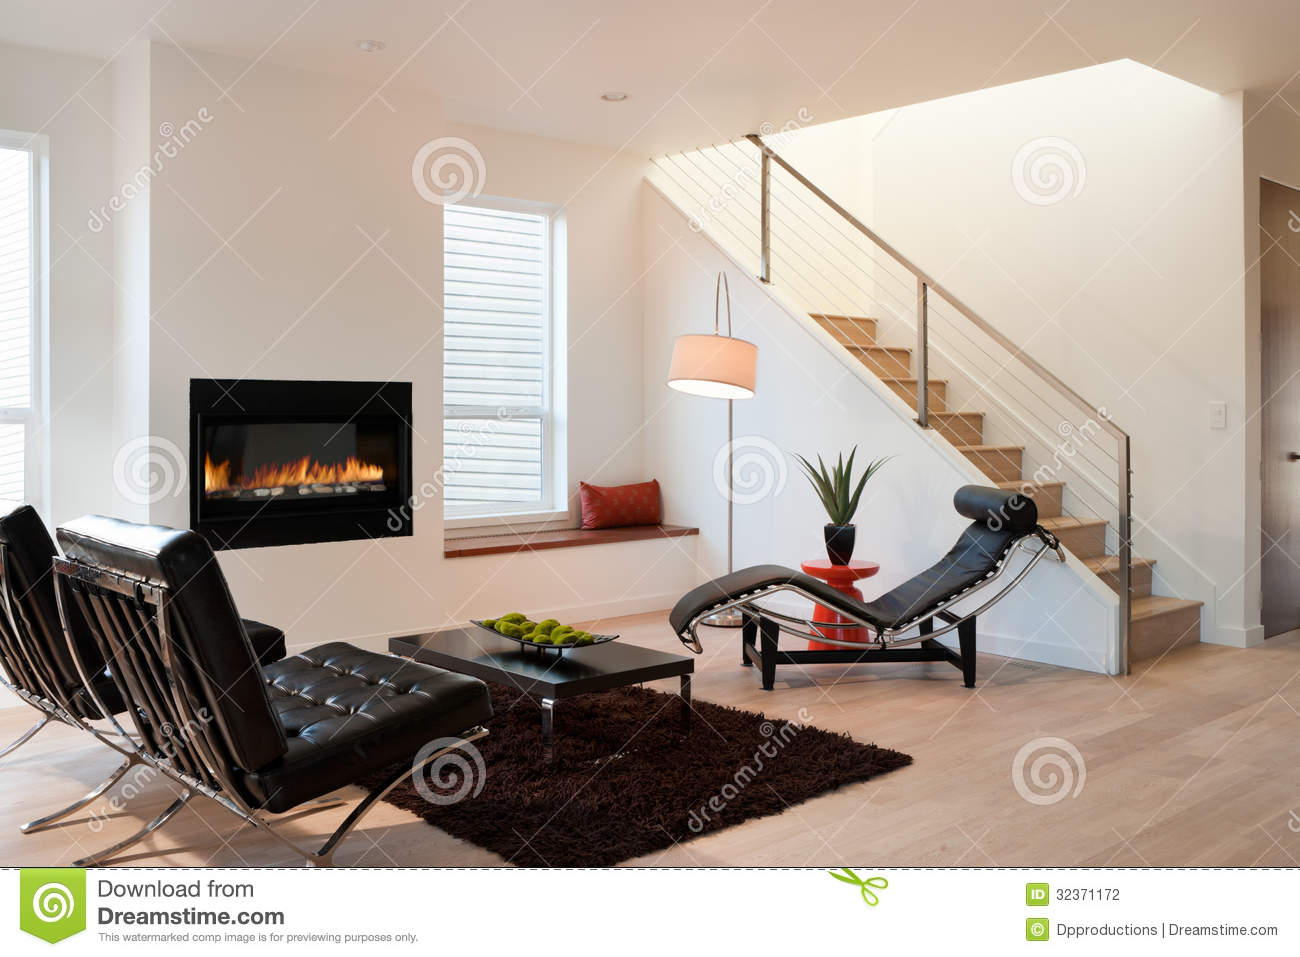 Salon de luxe moderne photo stock image du maison home 32371172 for Photo de salon moderne